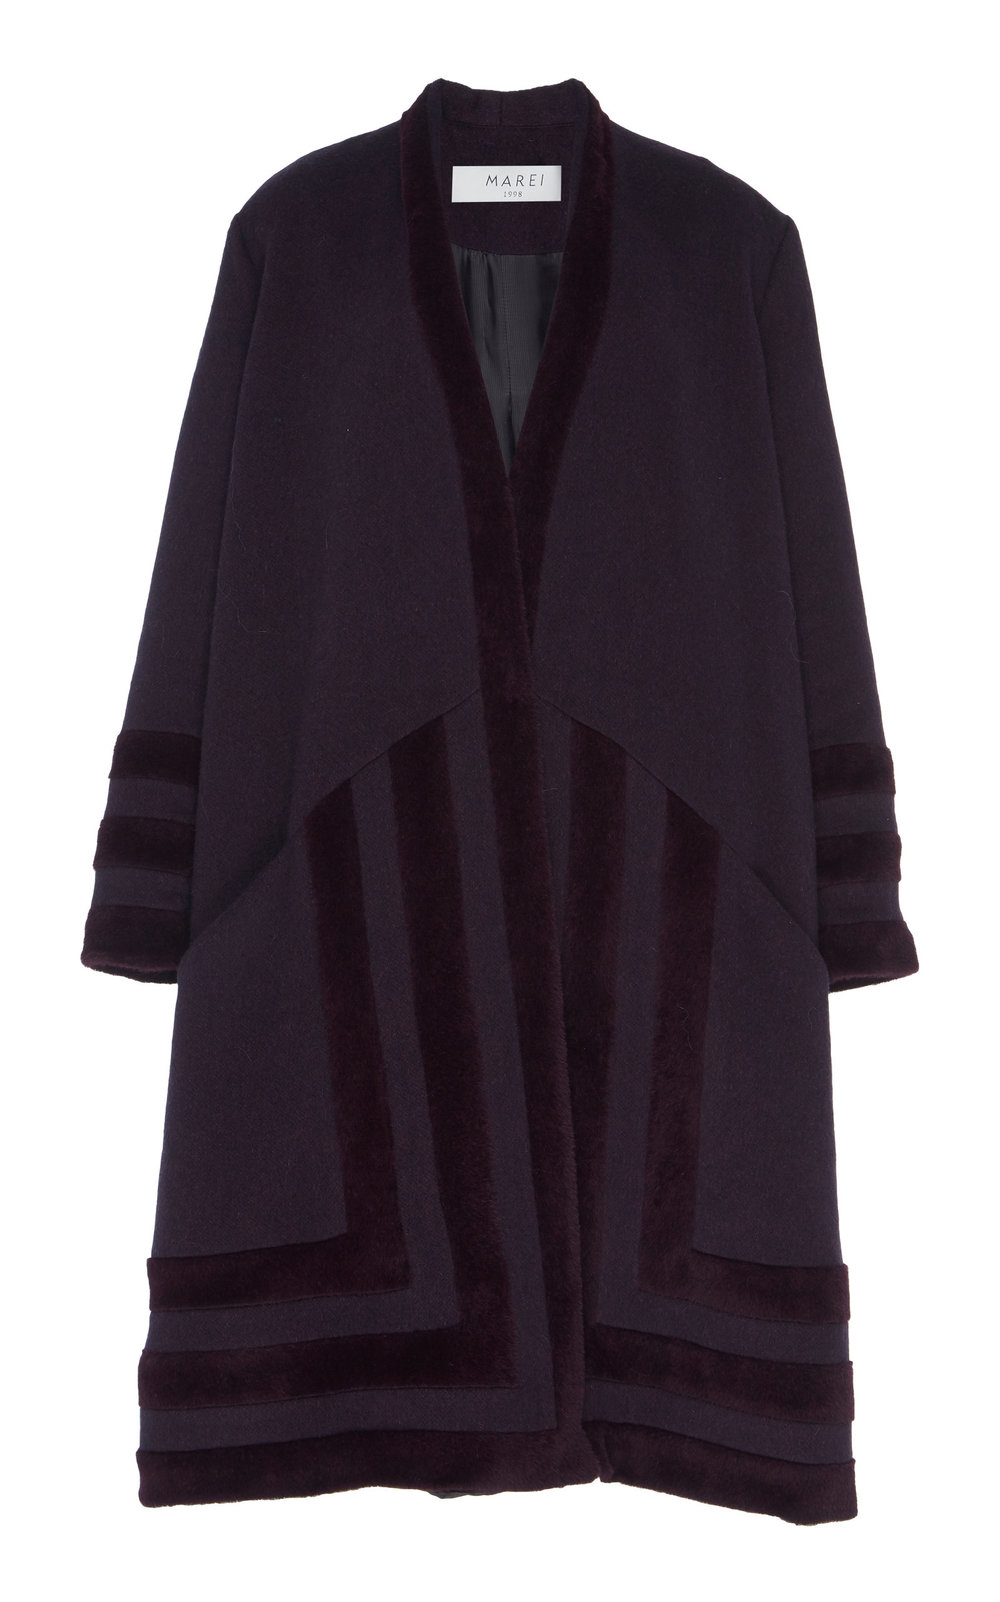 Wedelia Overcoat - VIOLET  Cut in an oversized silhouette, enhanced by deep neckline and dropped shoulders, this coat is an ideal winter piece. Made from a sumptuous blend of Virgin Wool and Angora, it is incredibly soft to touch. Decorative textured Fur trim details add a sophisticated twist.